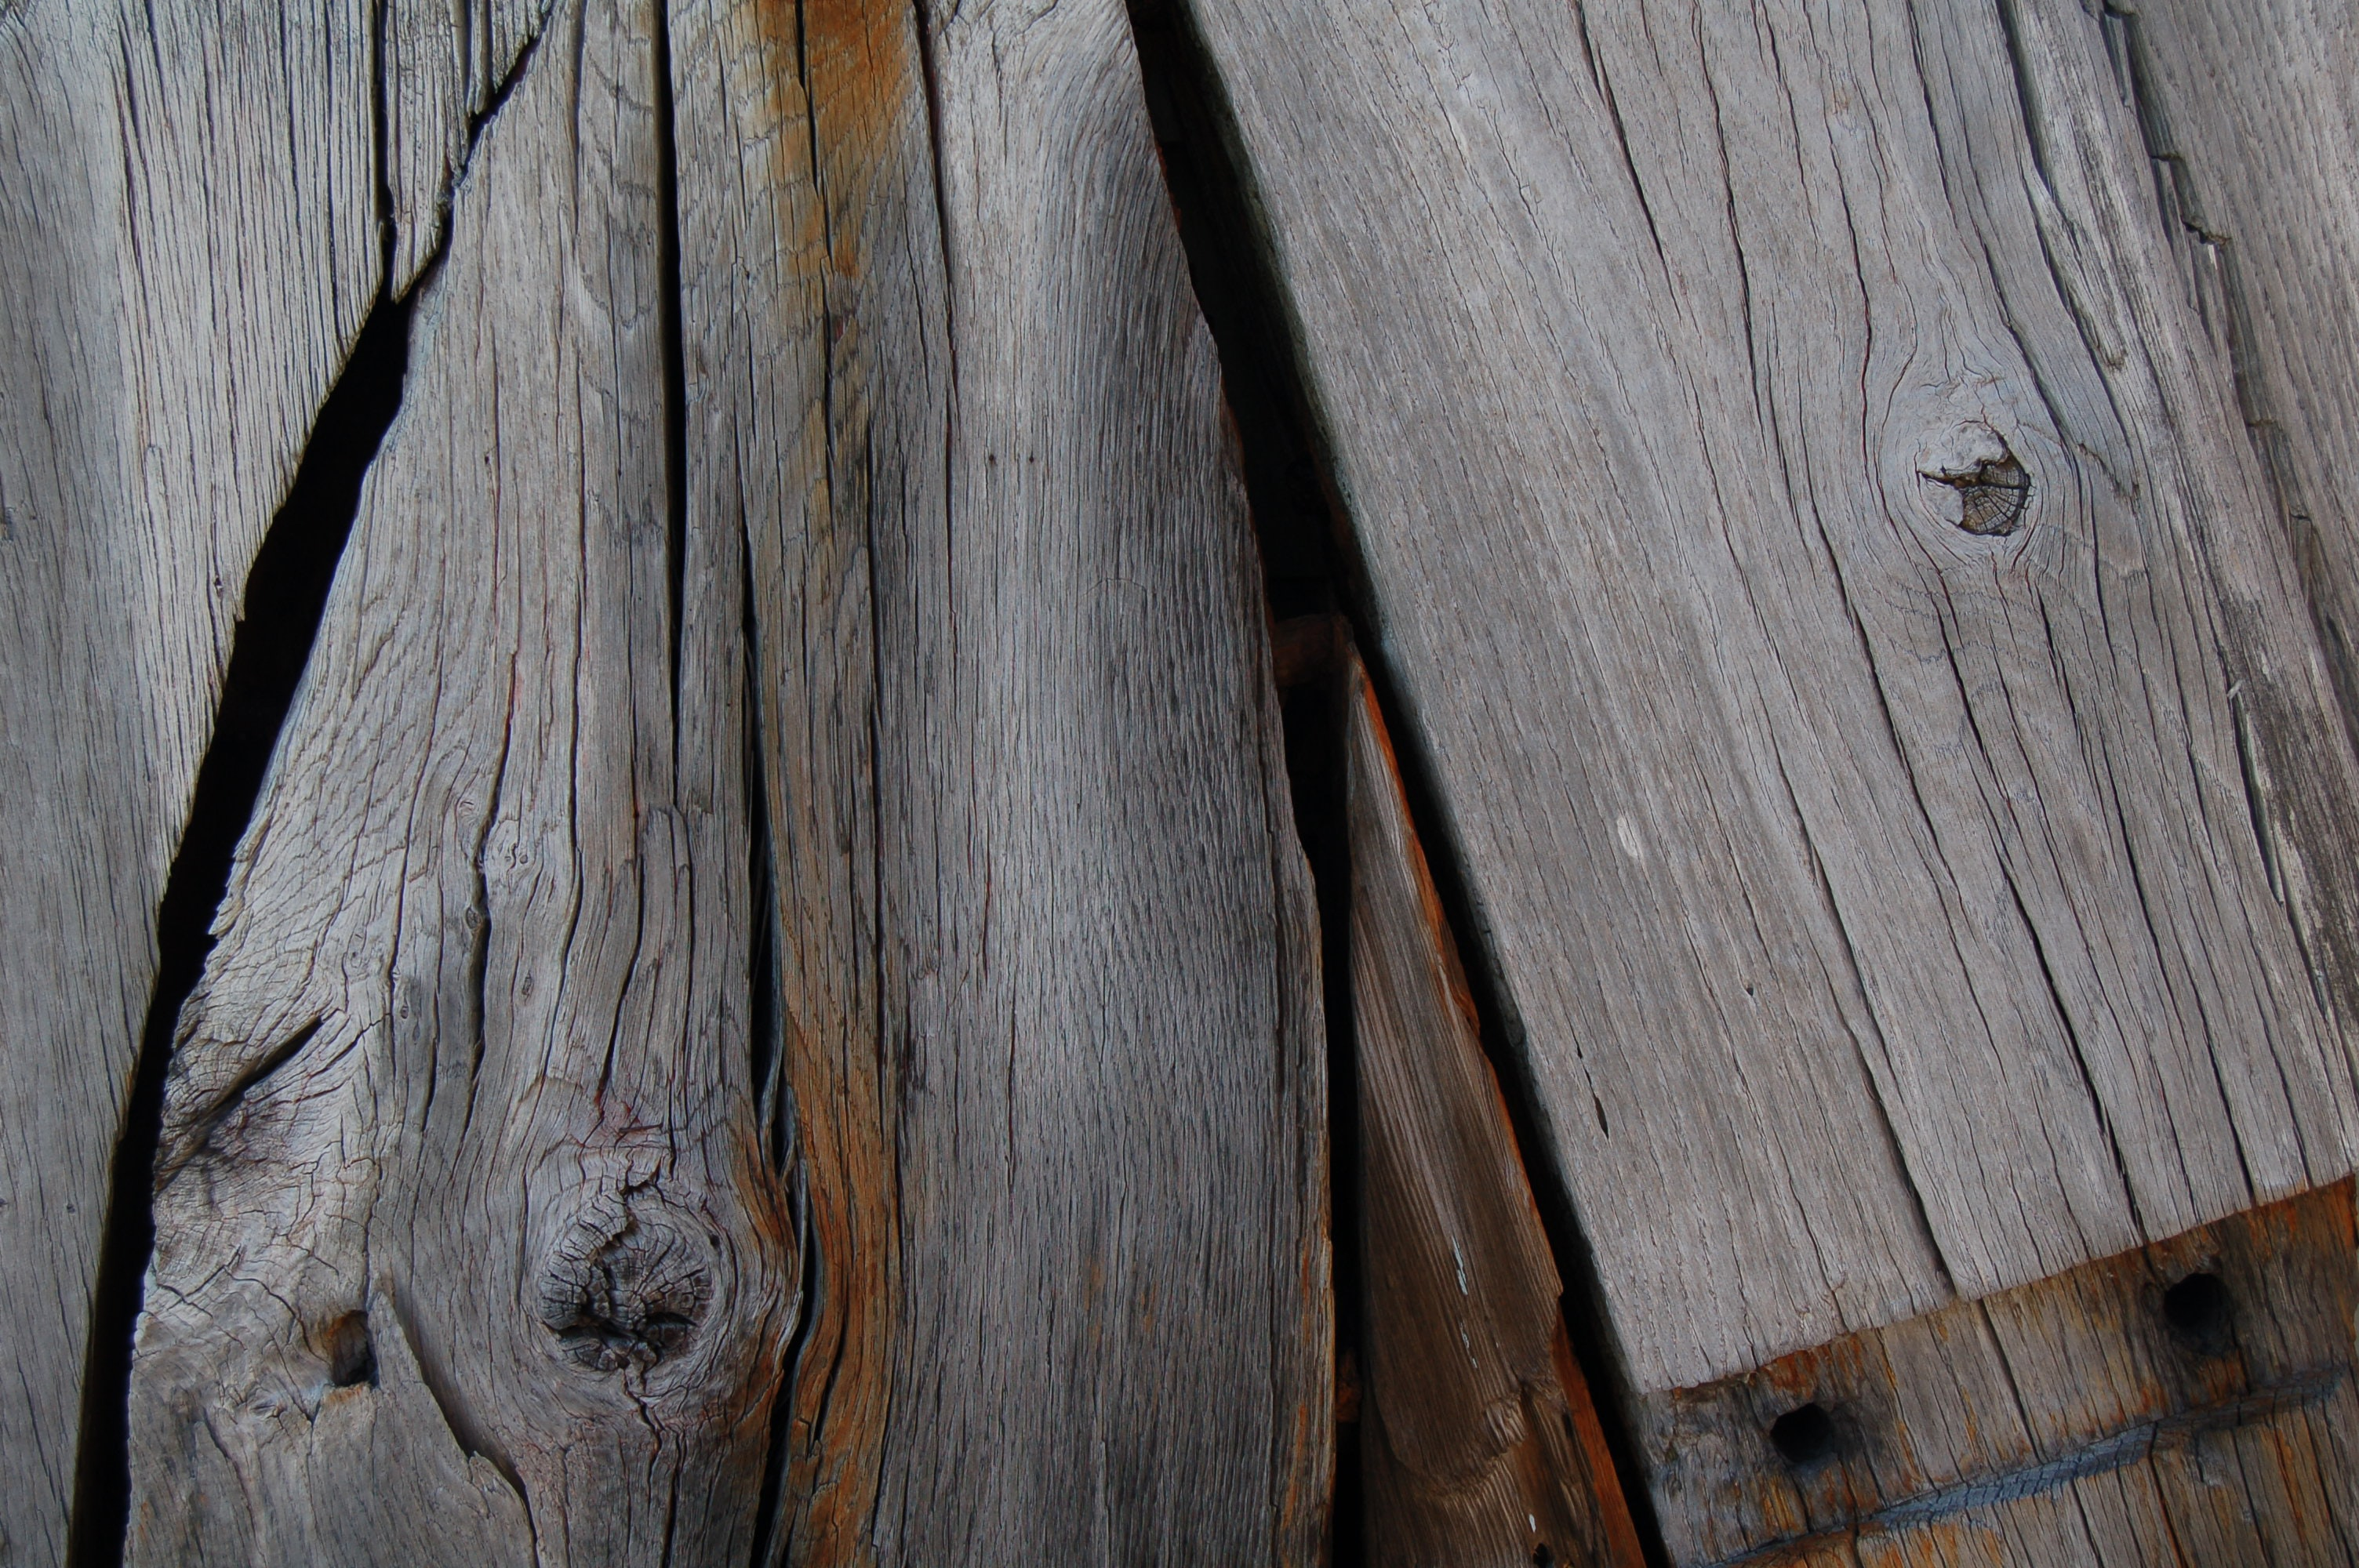 A close-up of weathered wooden planks with visible knots